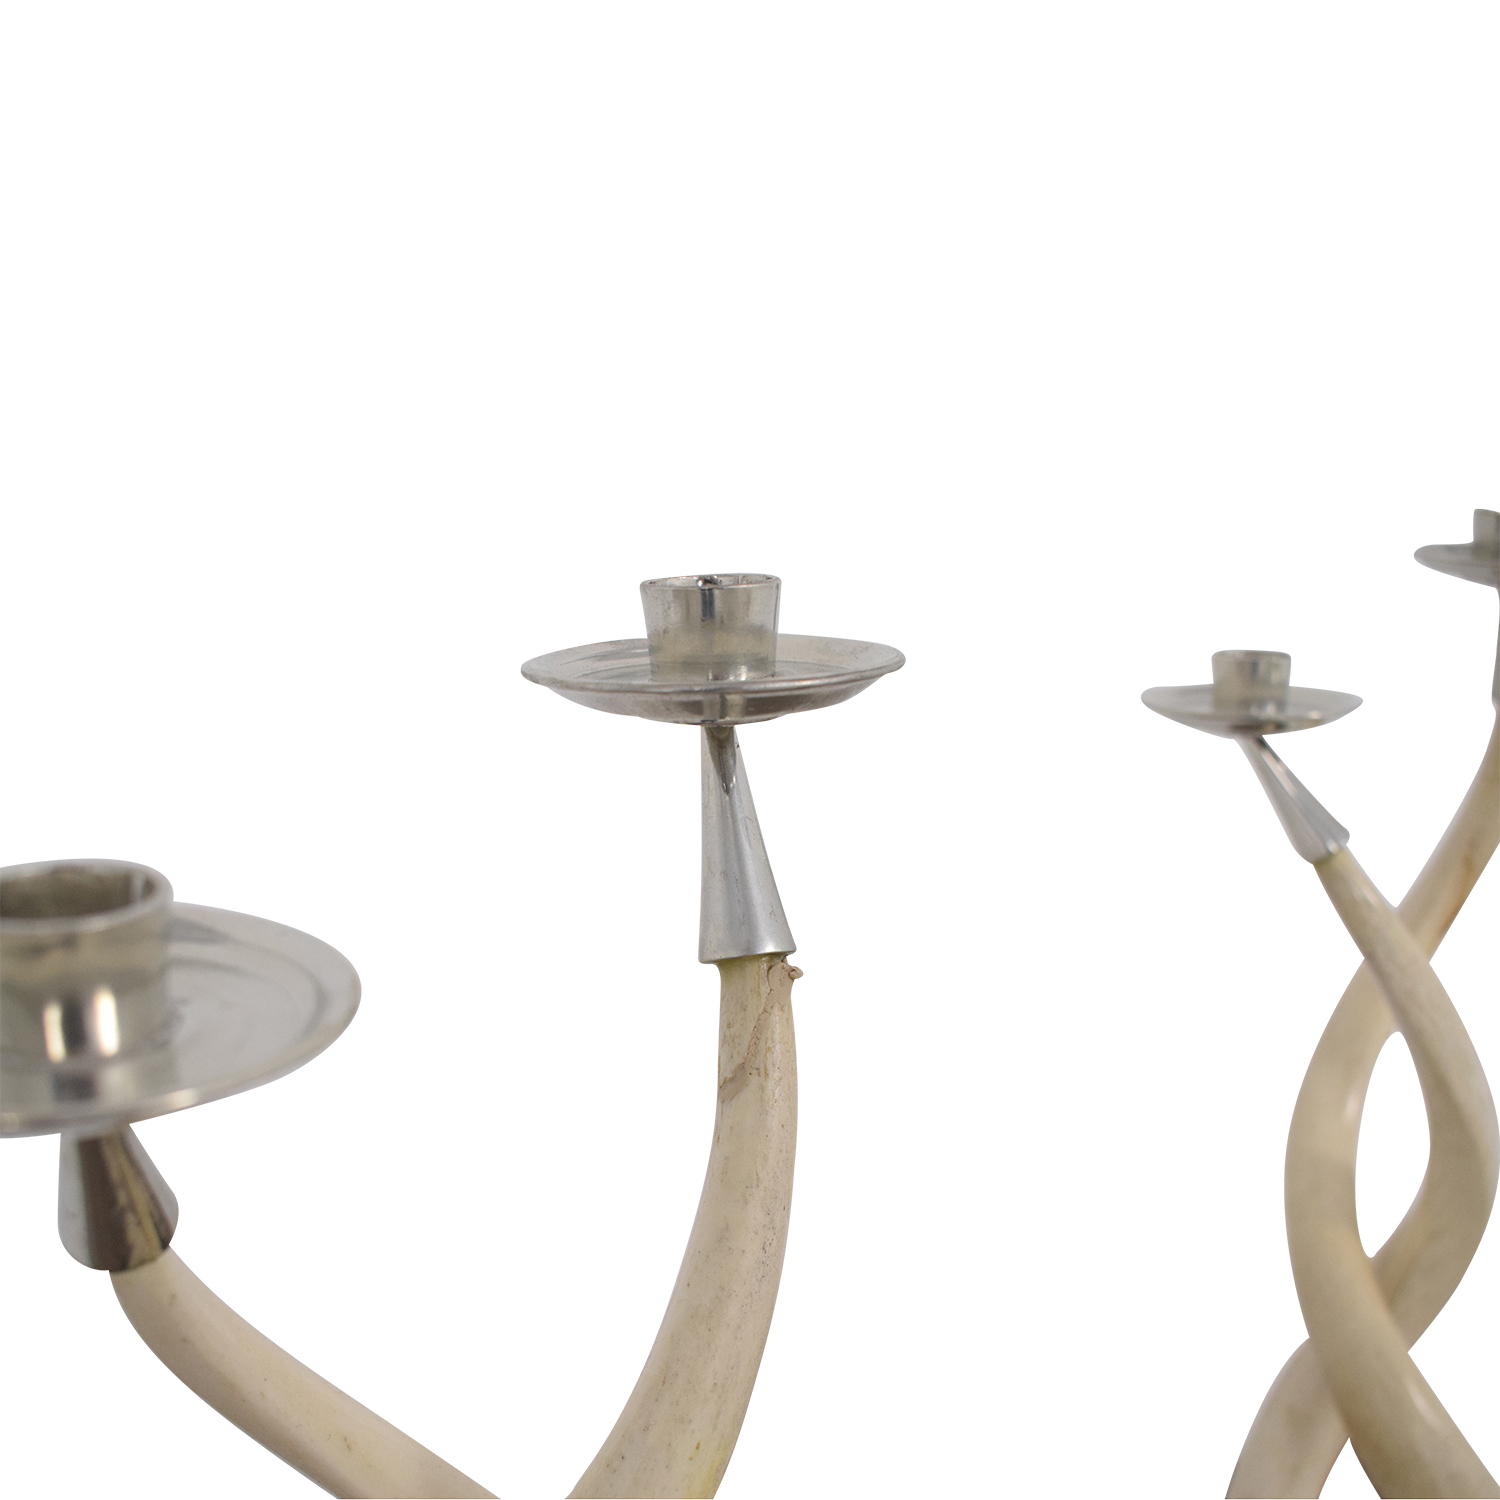 shop Twisted Horn Candlesticks  Decorative Accents